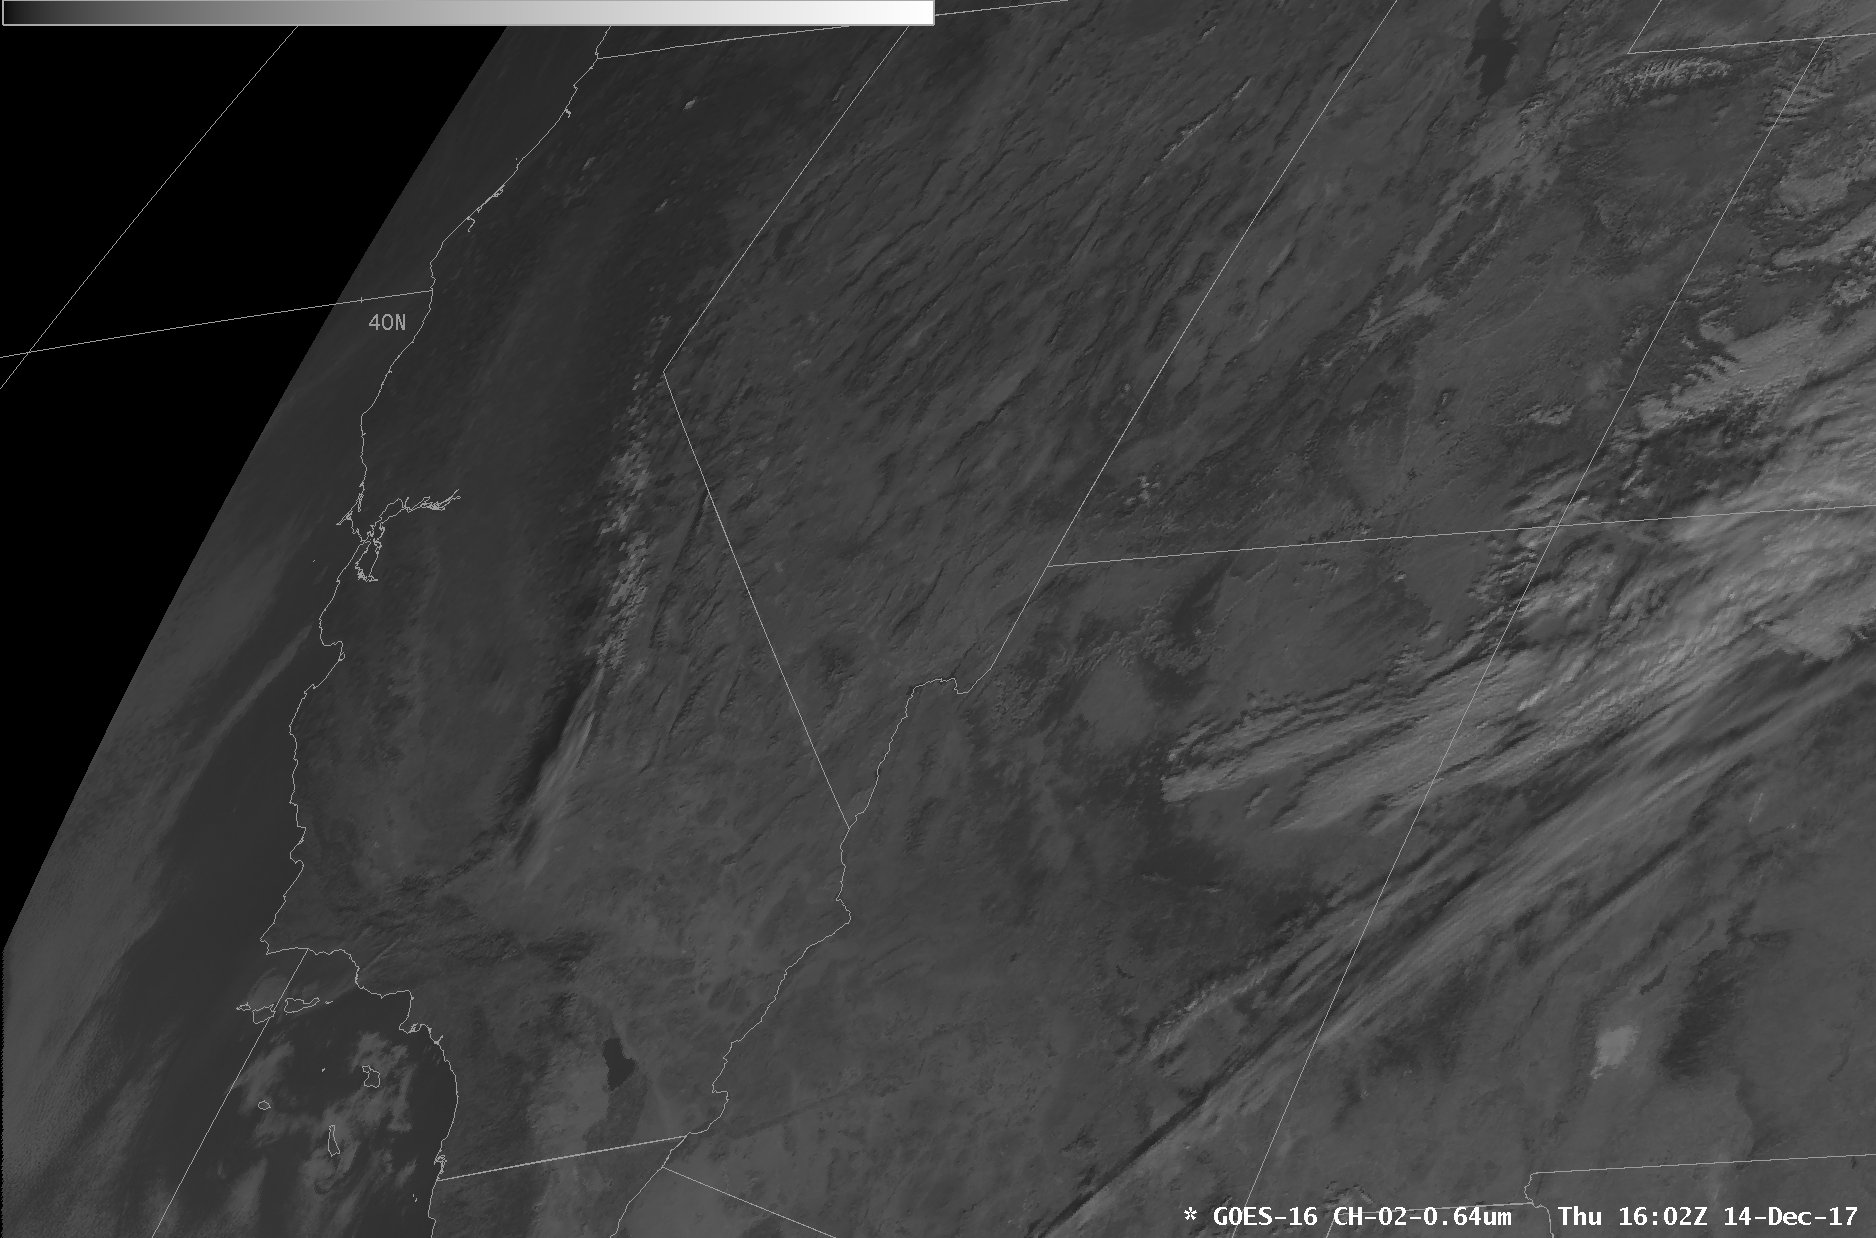 GOES-16 Visible (0.64 µm) image [click to enlarge]